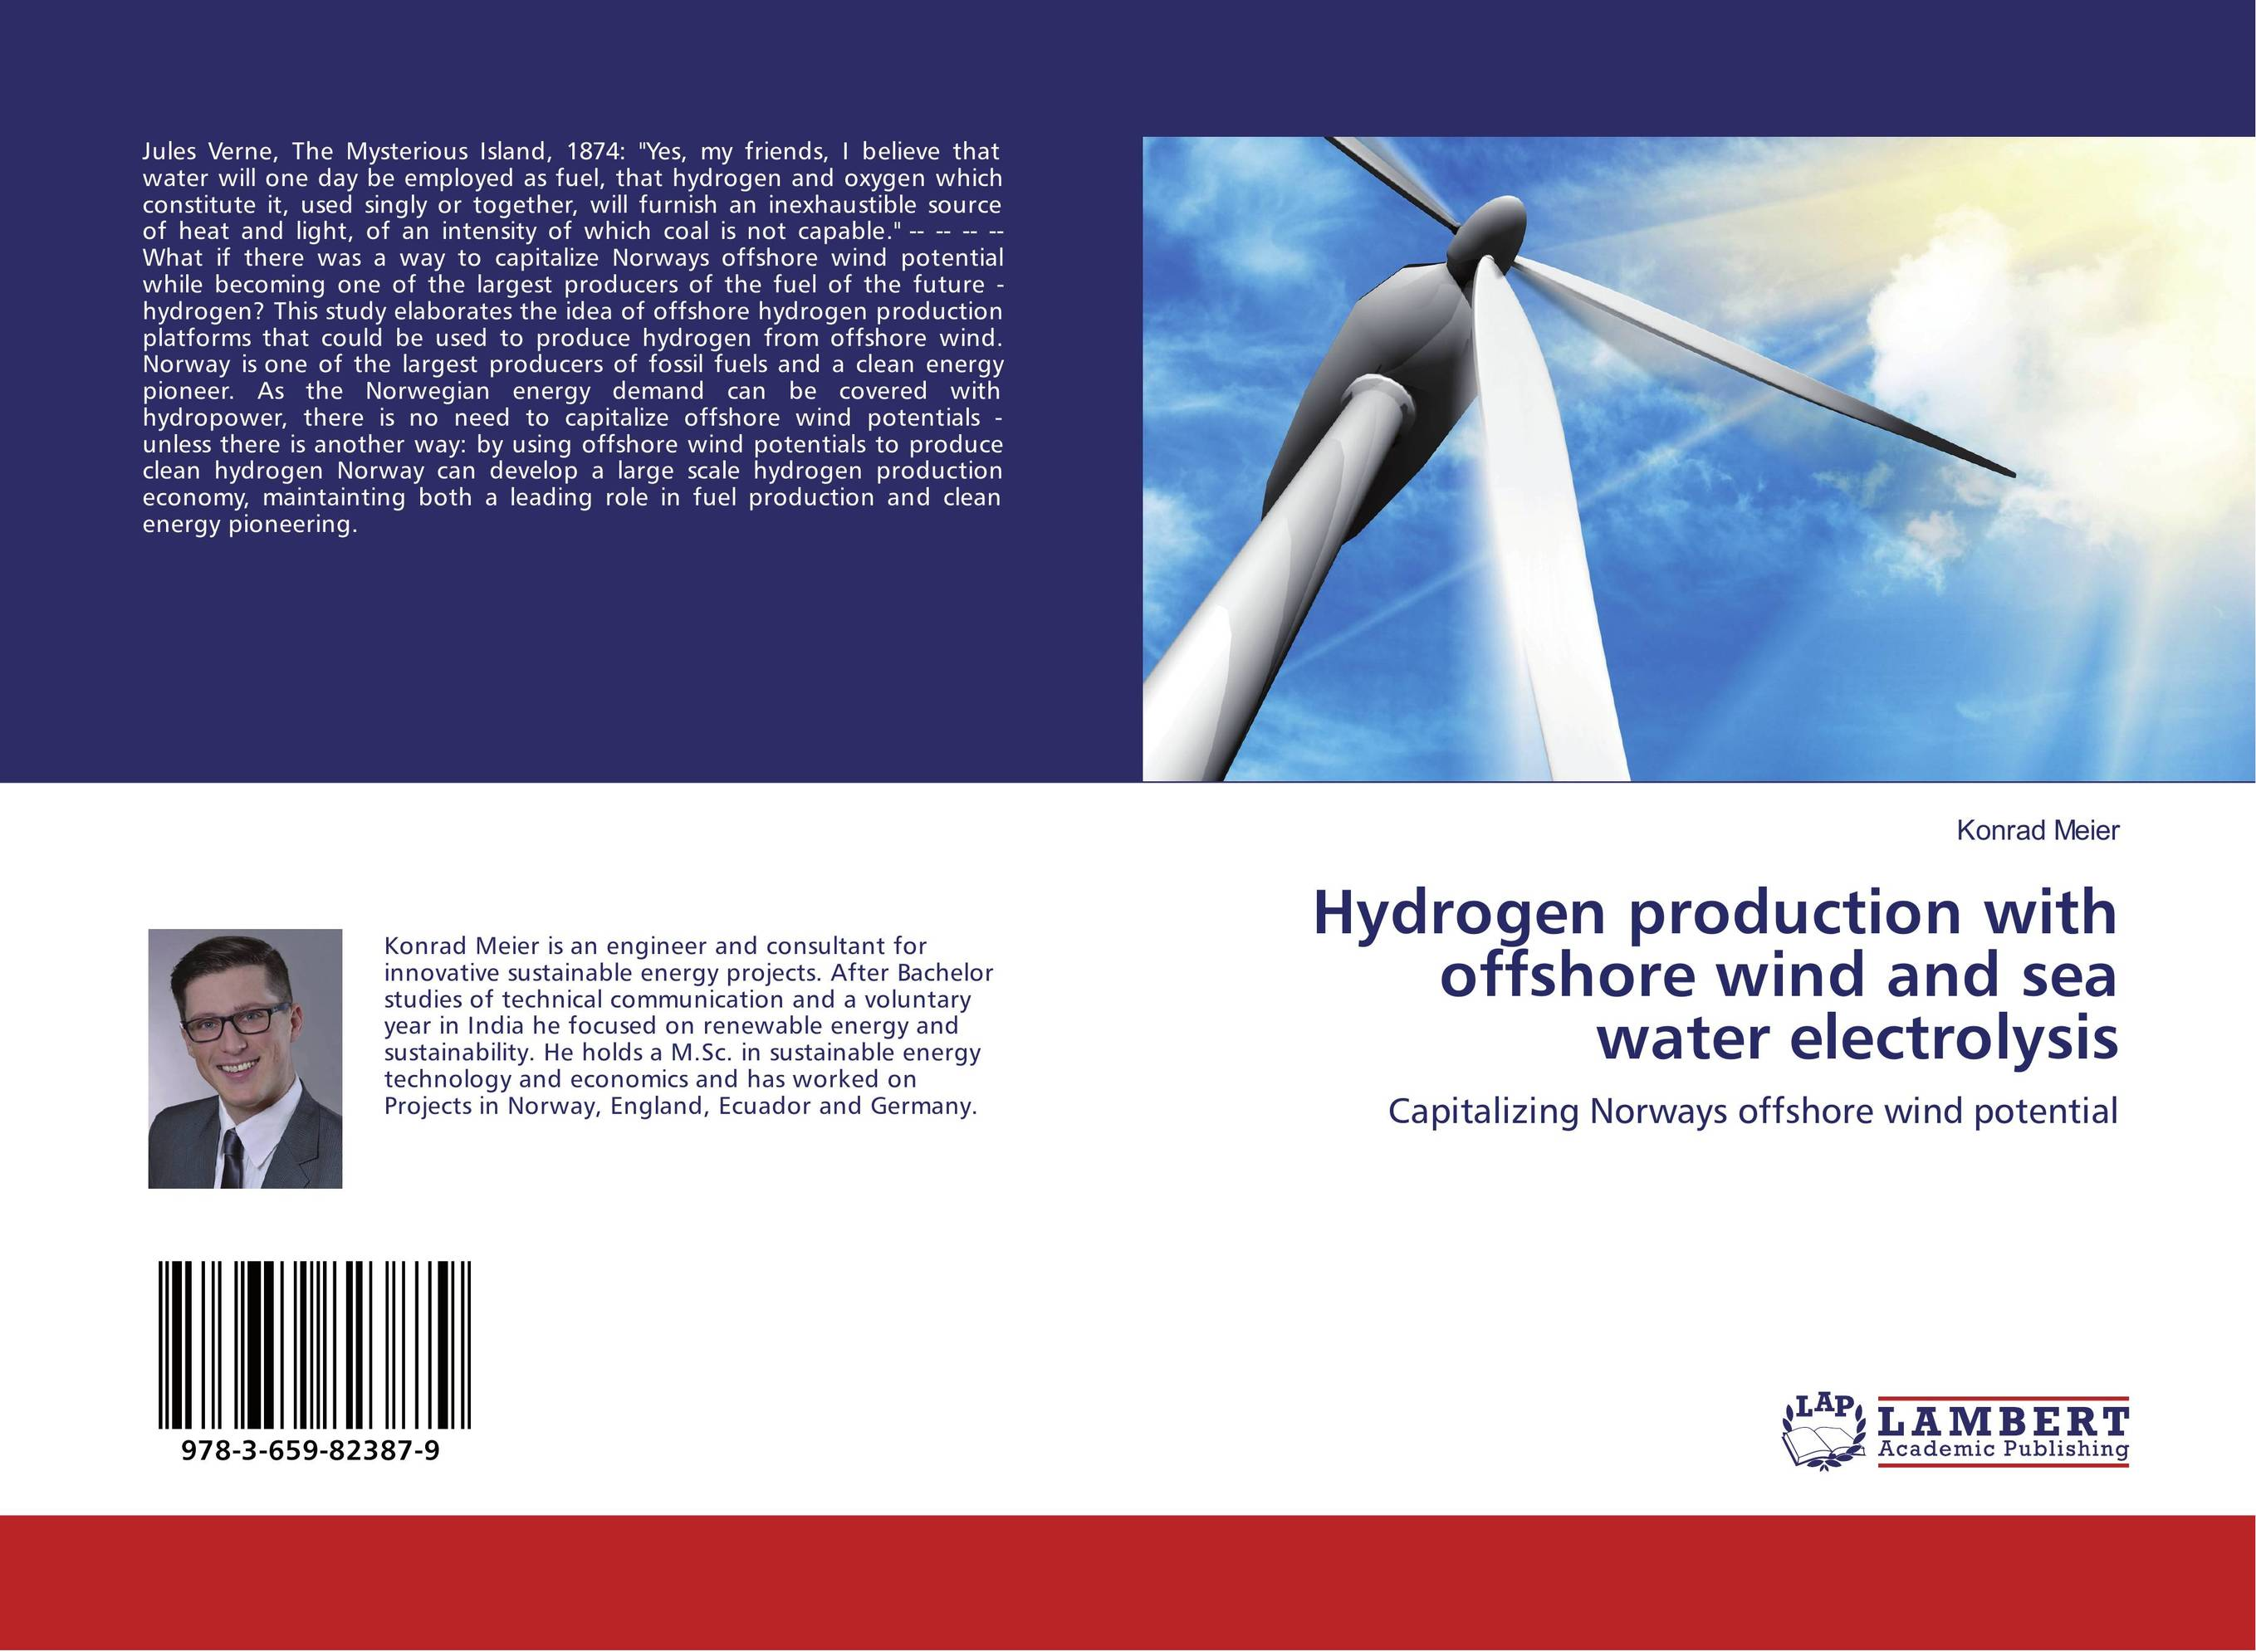 Hydrogen production with offshore wind and sea water electrolysis offshore